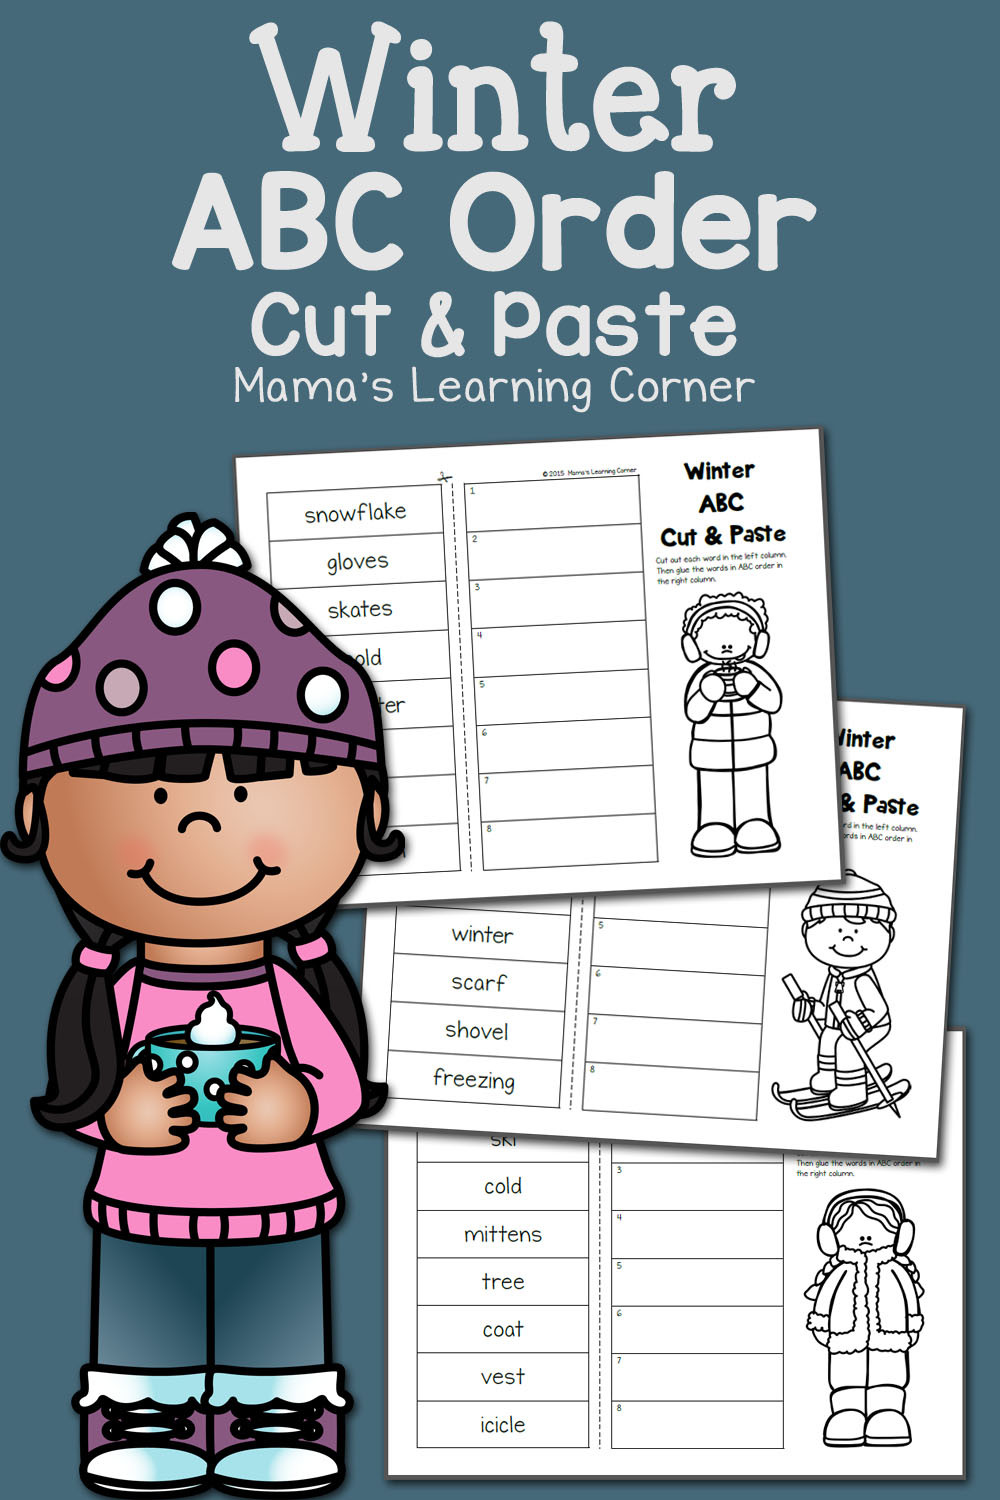 Printable Abc order Worksheets Winter Cut and Paste Abc order Mamas Learning Corner